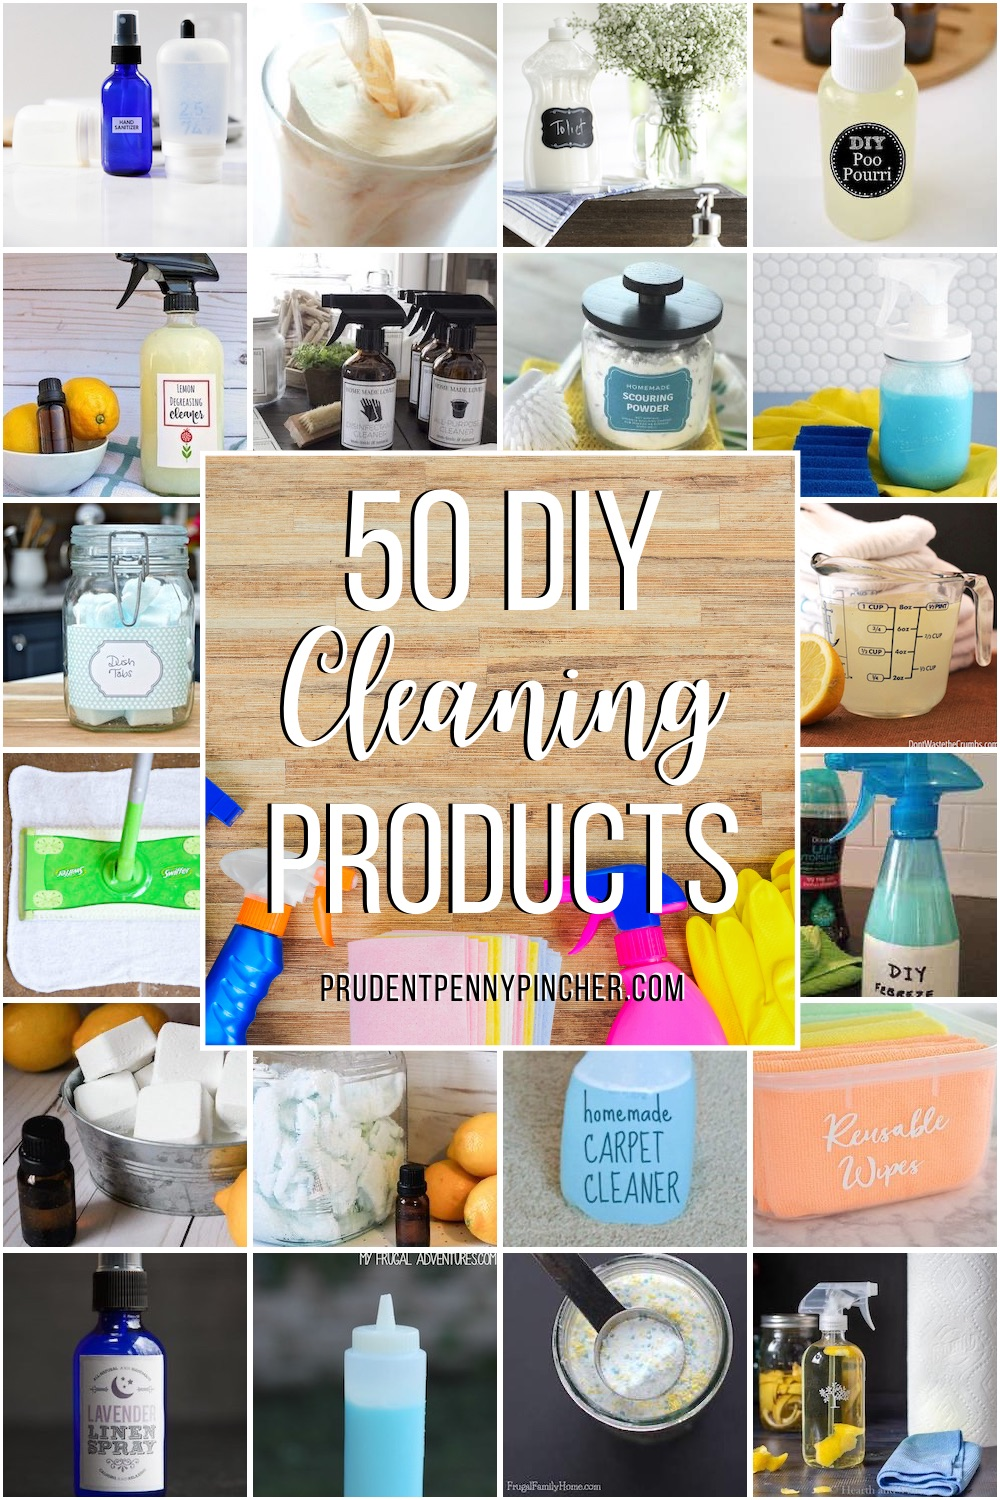 50 DIY Cleaning Products